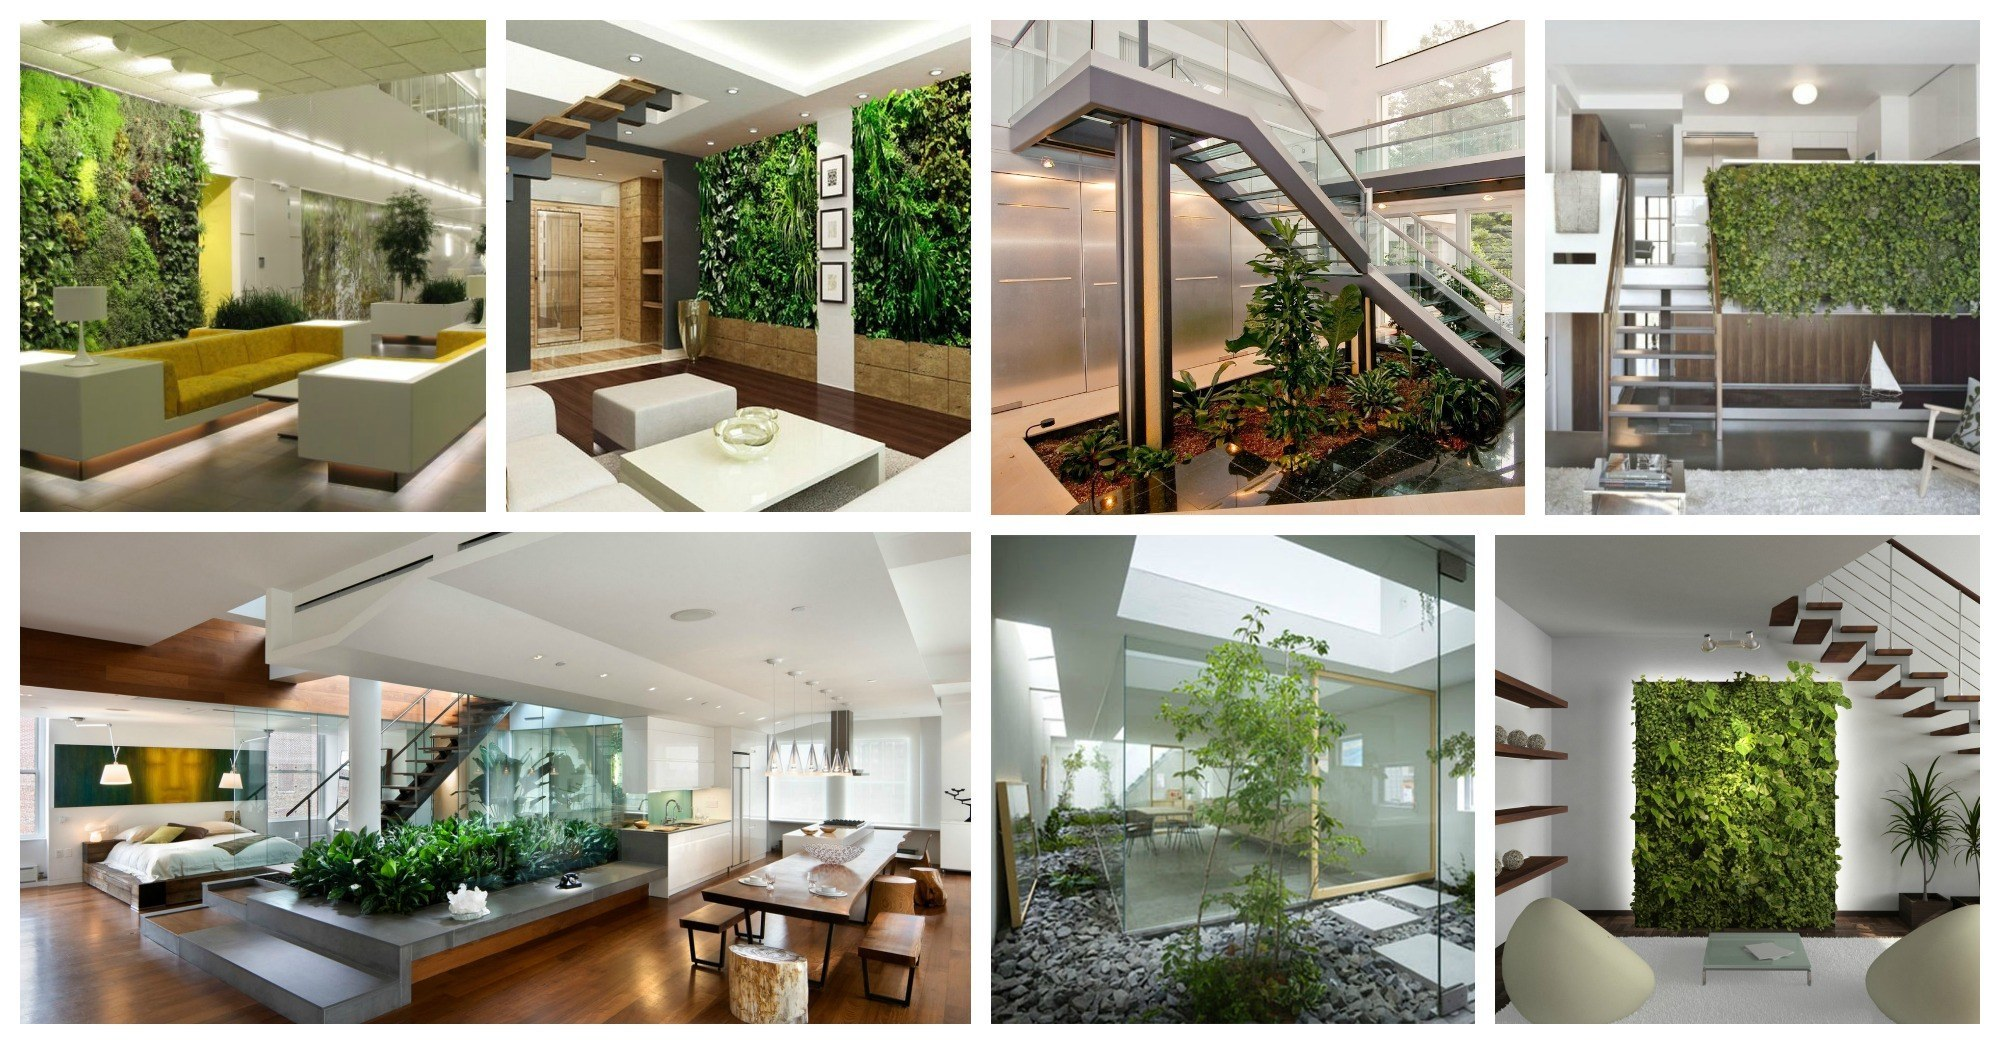 Impressive Interior Gardens That You Wish You Had At Home